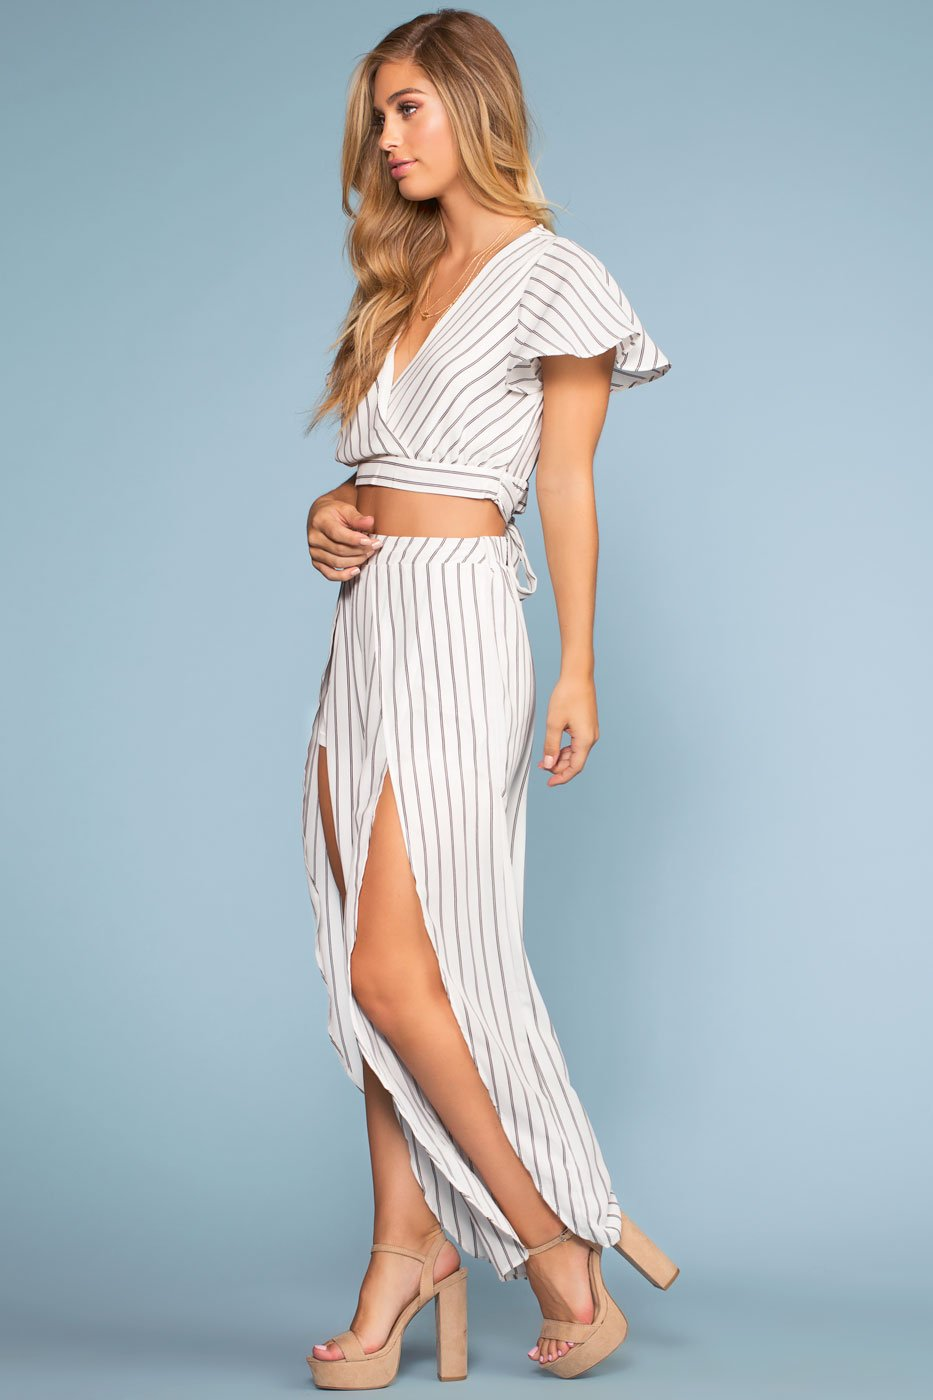 Pants - Take It Breezy Highwaist Striped Culottes